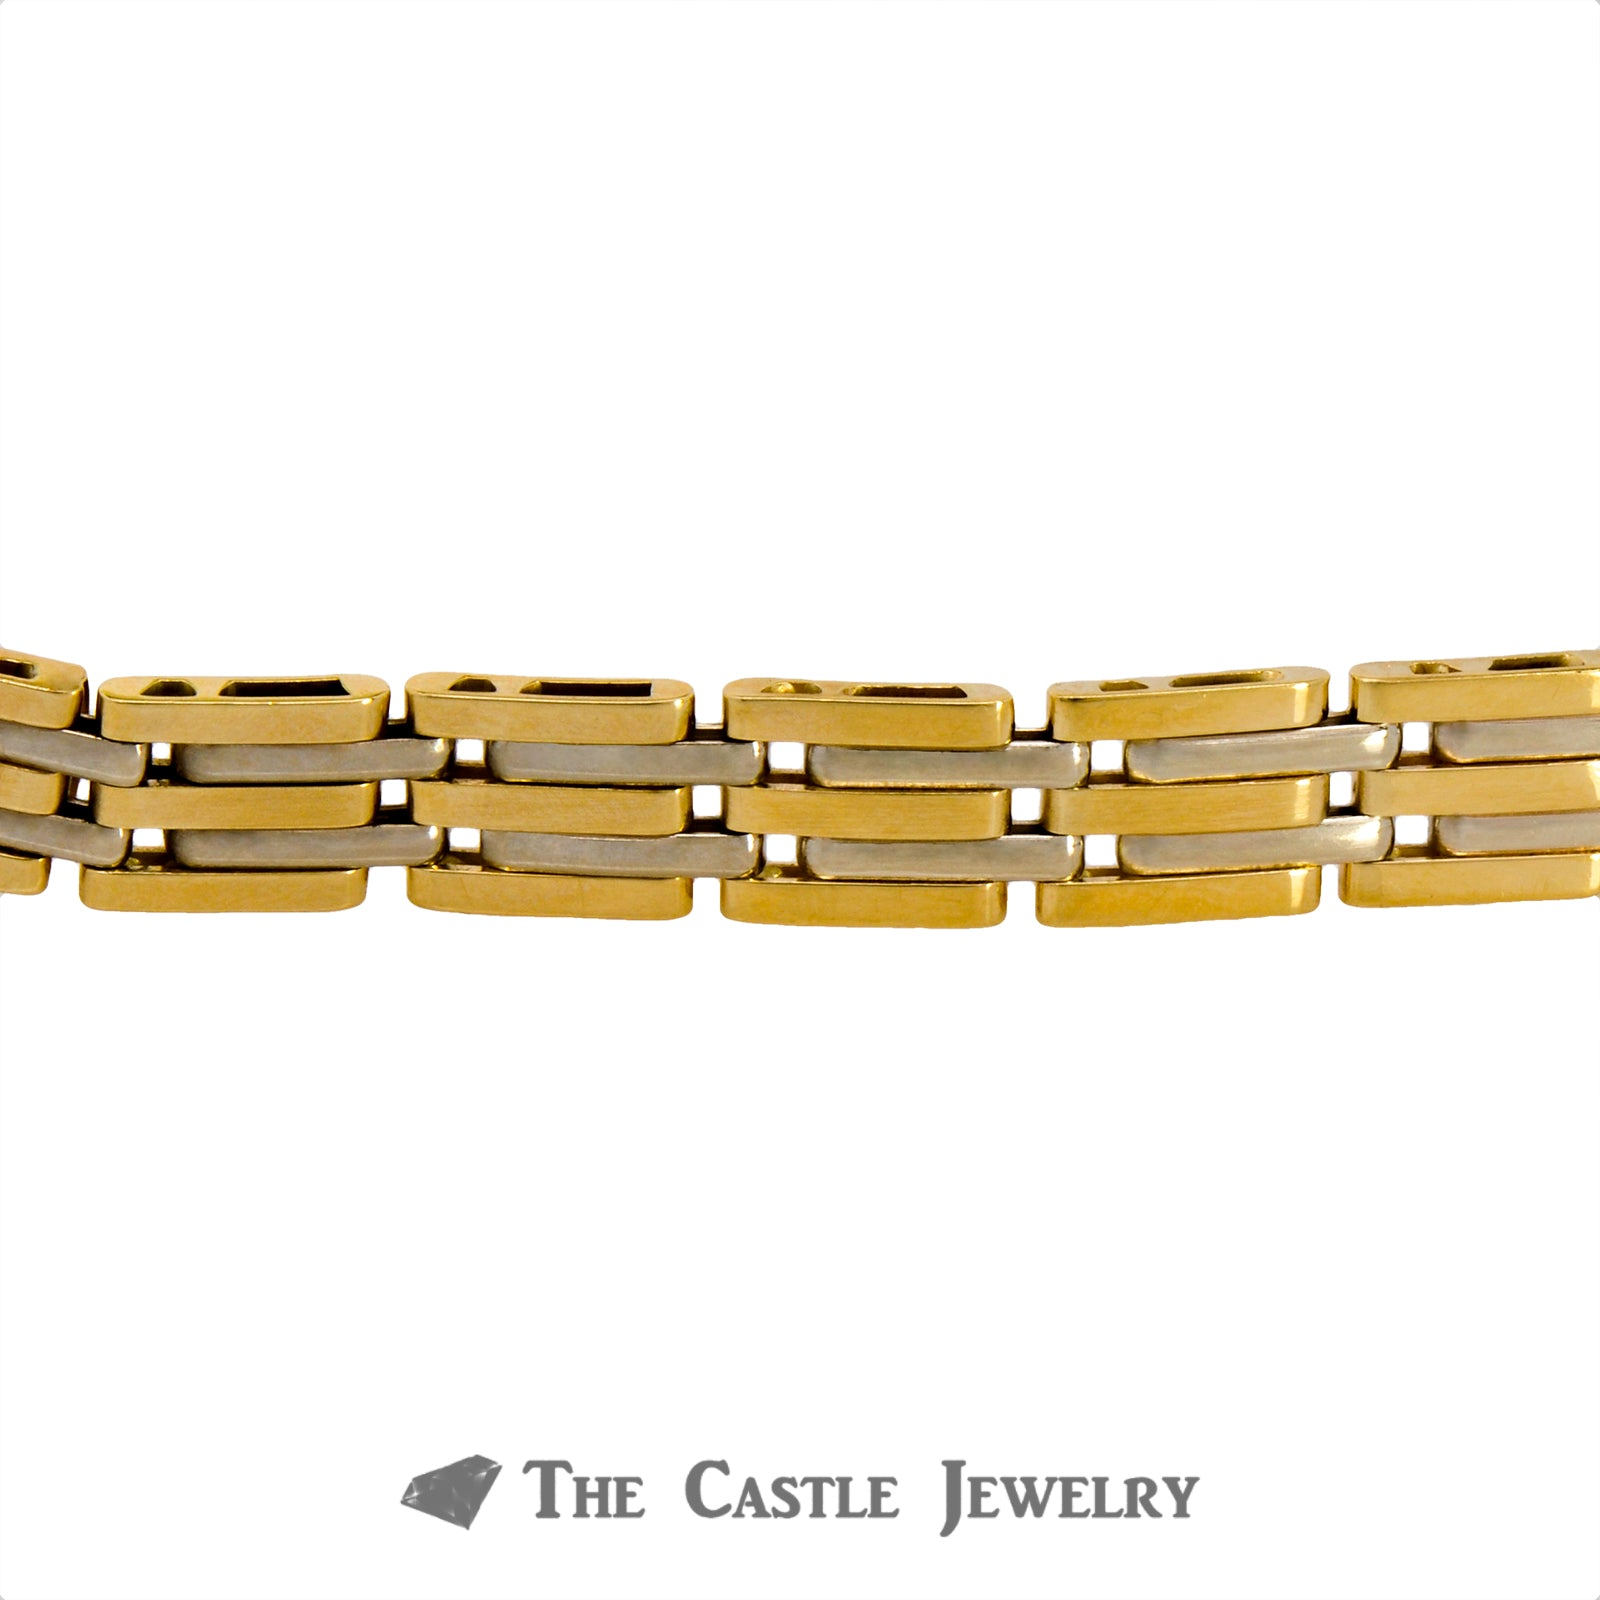 8 Inch Men's Bracelet Crafted in 14K Yellow Gold with Princess Cut Diamonds in Center-2